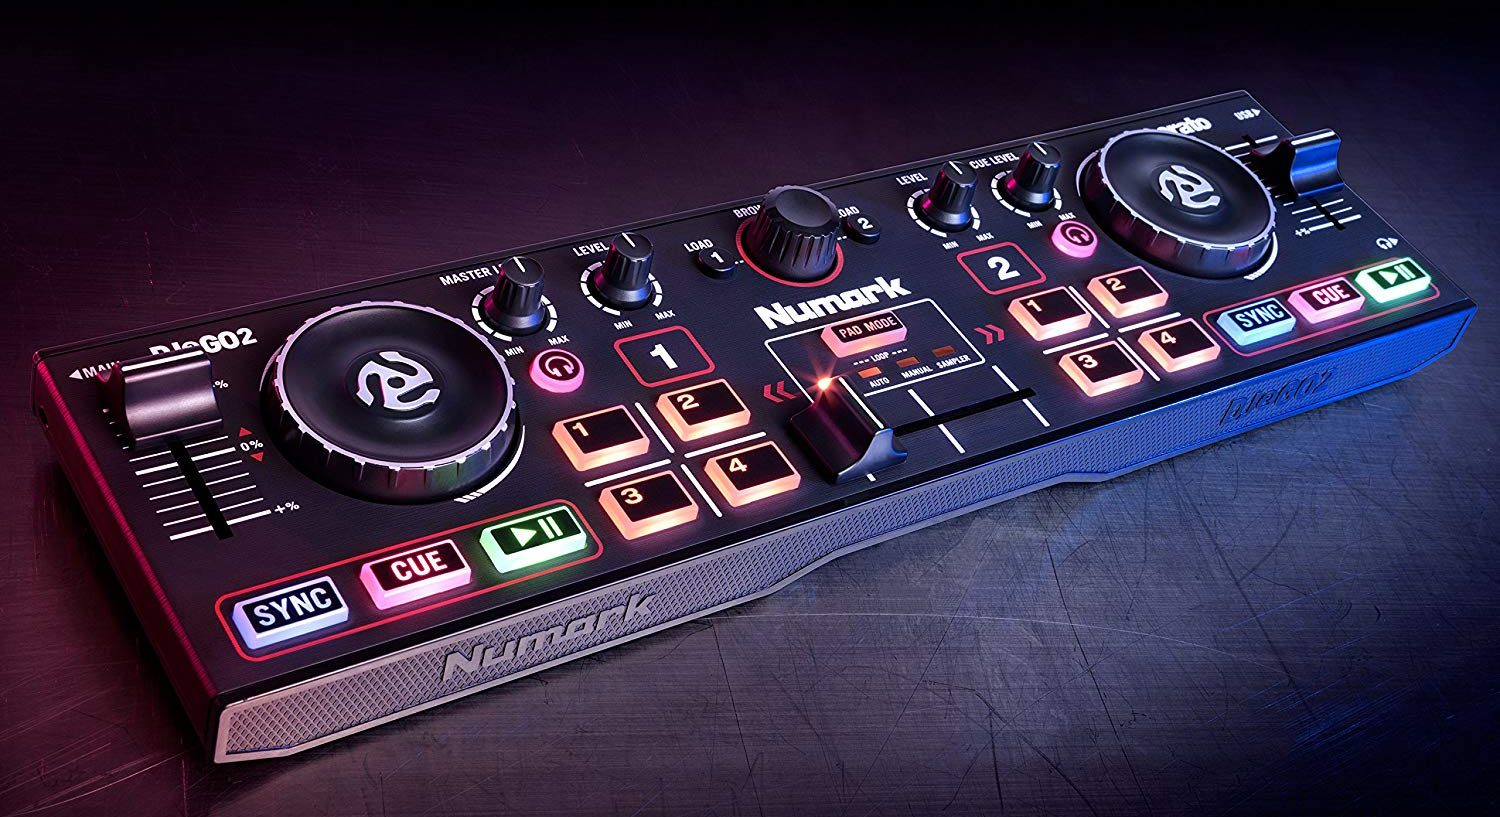 The Best DJ Controller Sets For Beginners and Professionals Alike